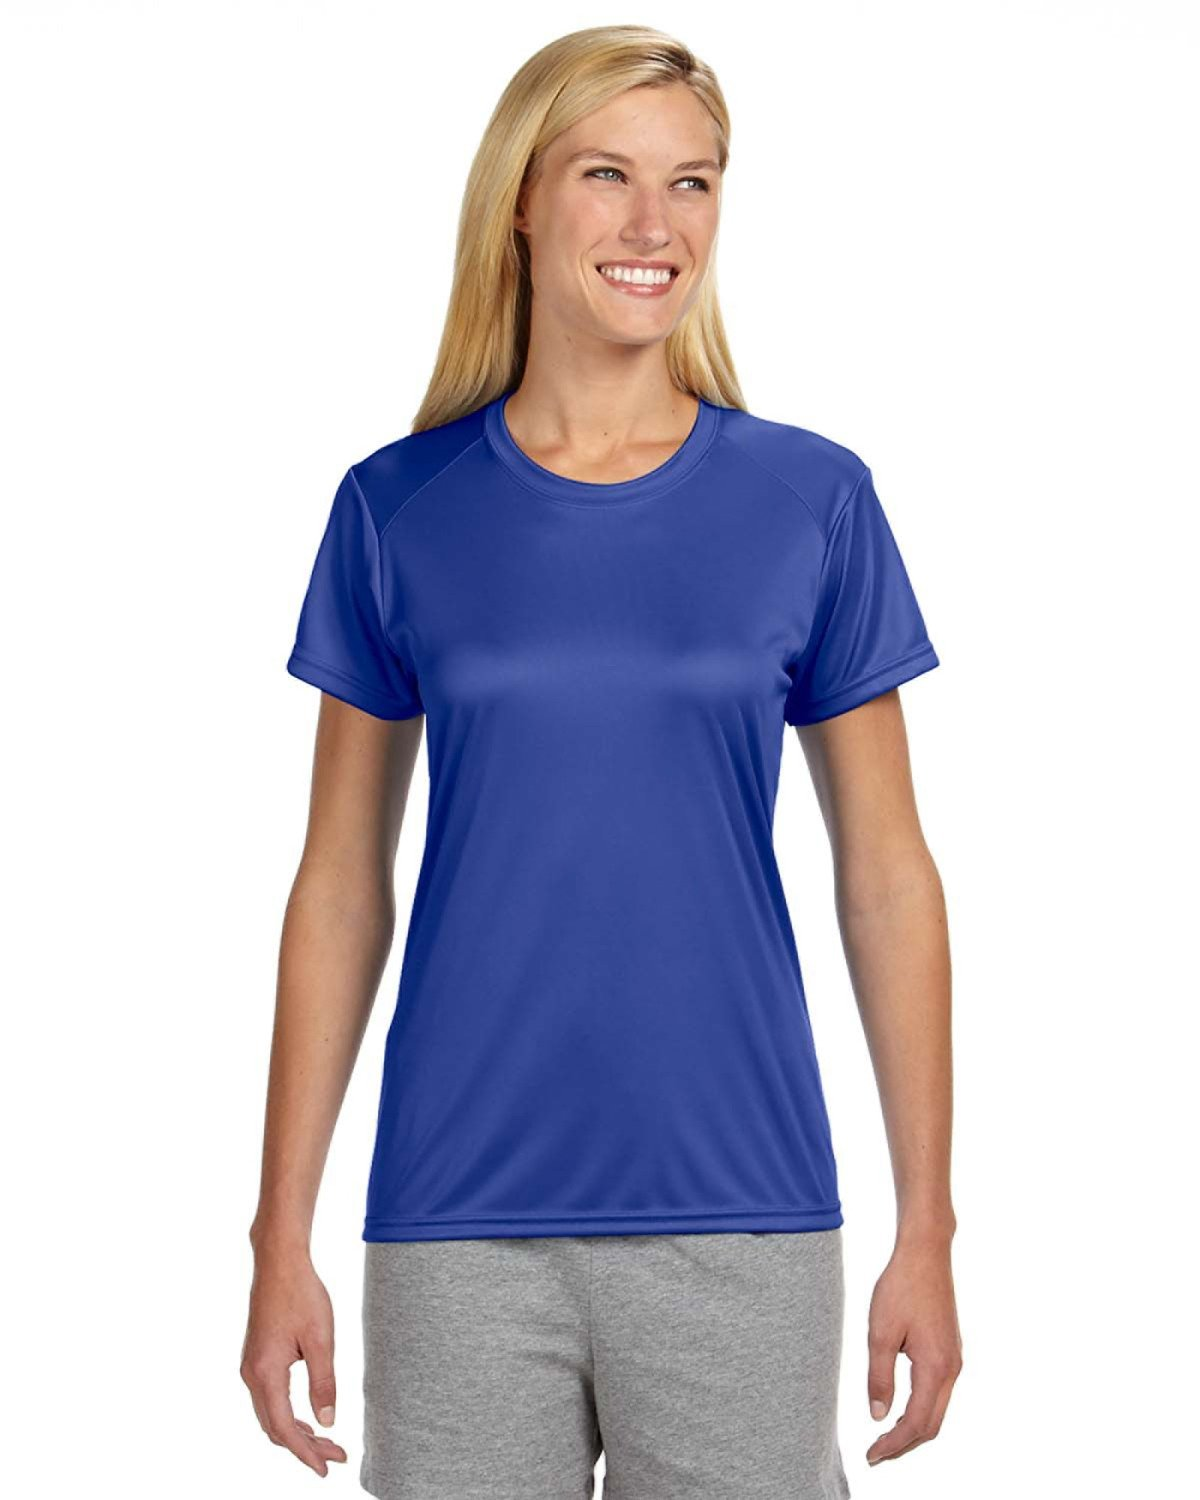 A4 Ladies' Cooling Performance T-Shirt ROYAL